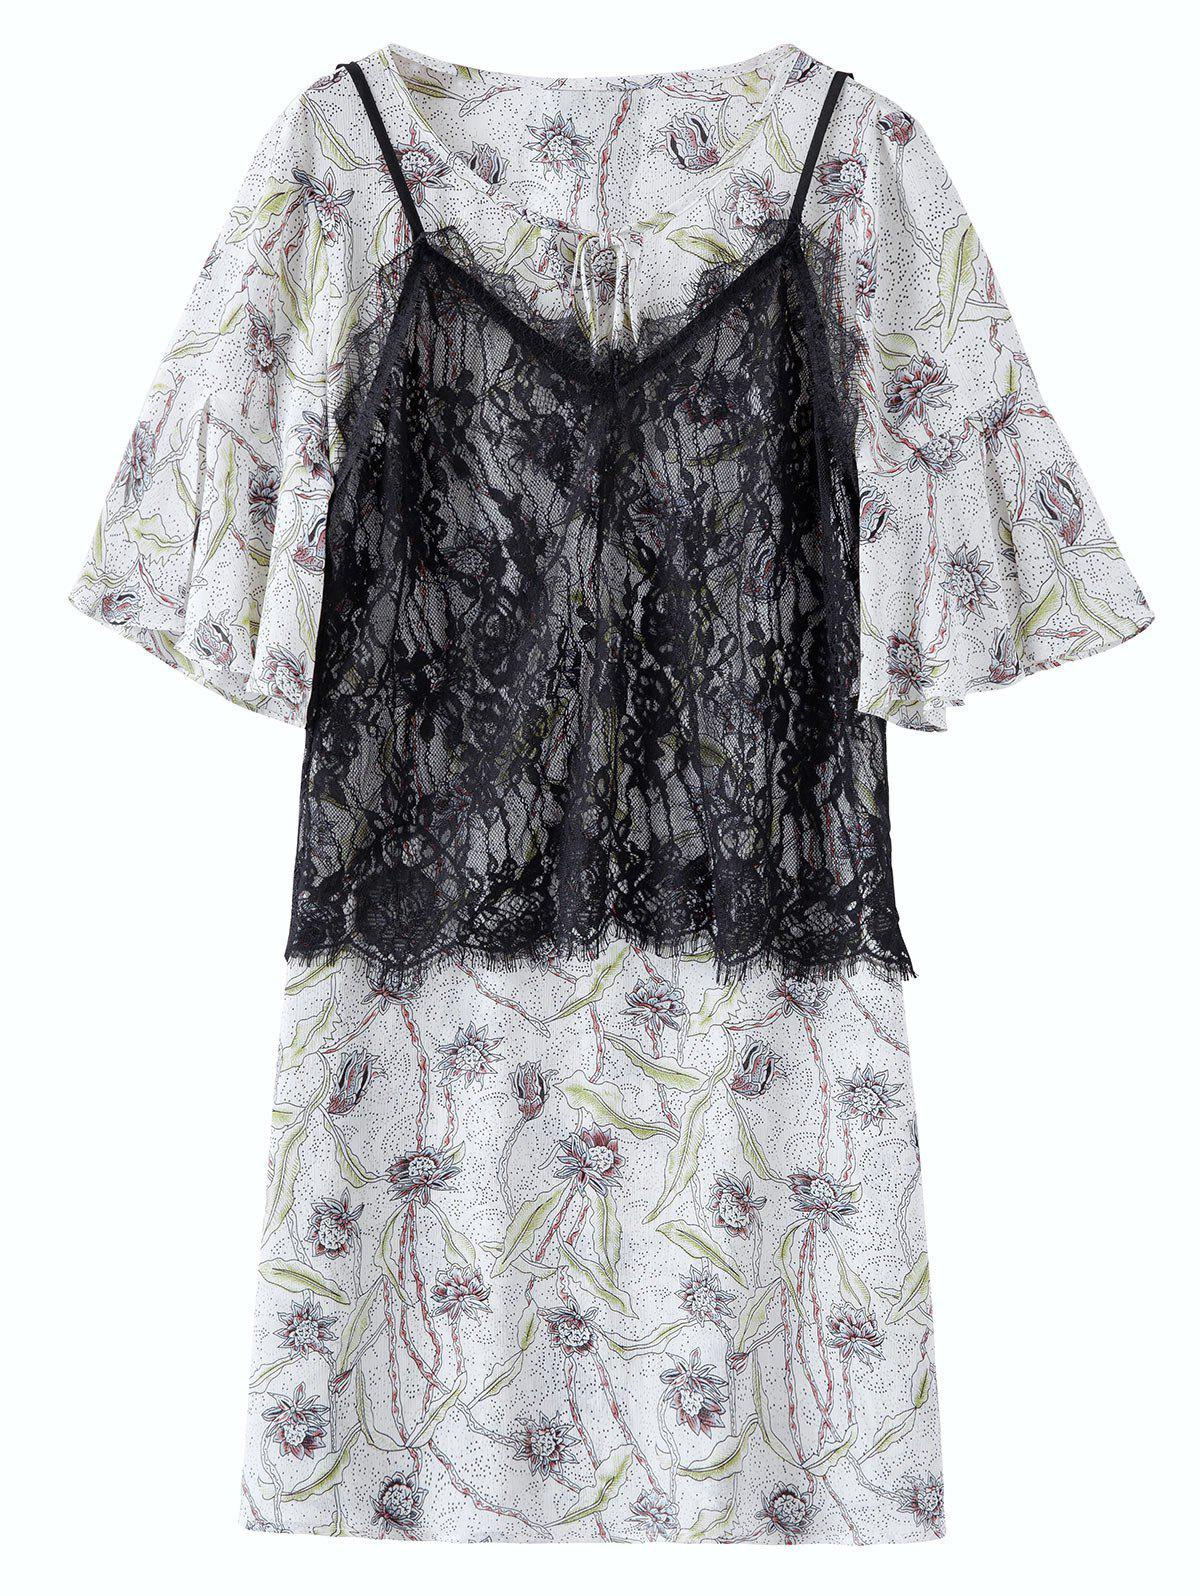 3ccd56dfcf5 2019 Chiffon Floral Plus Size Dress With Camisole